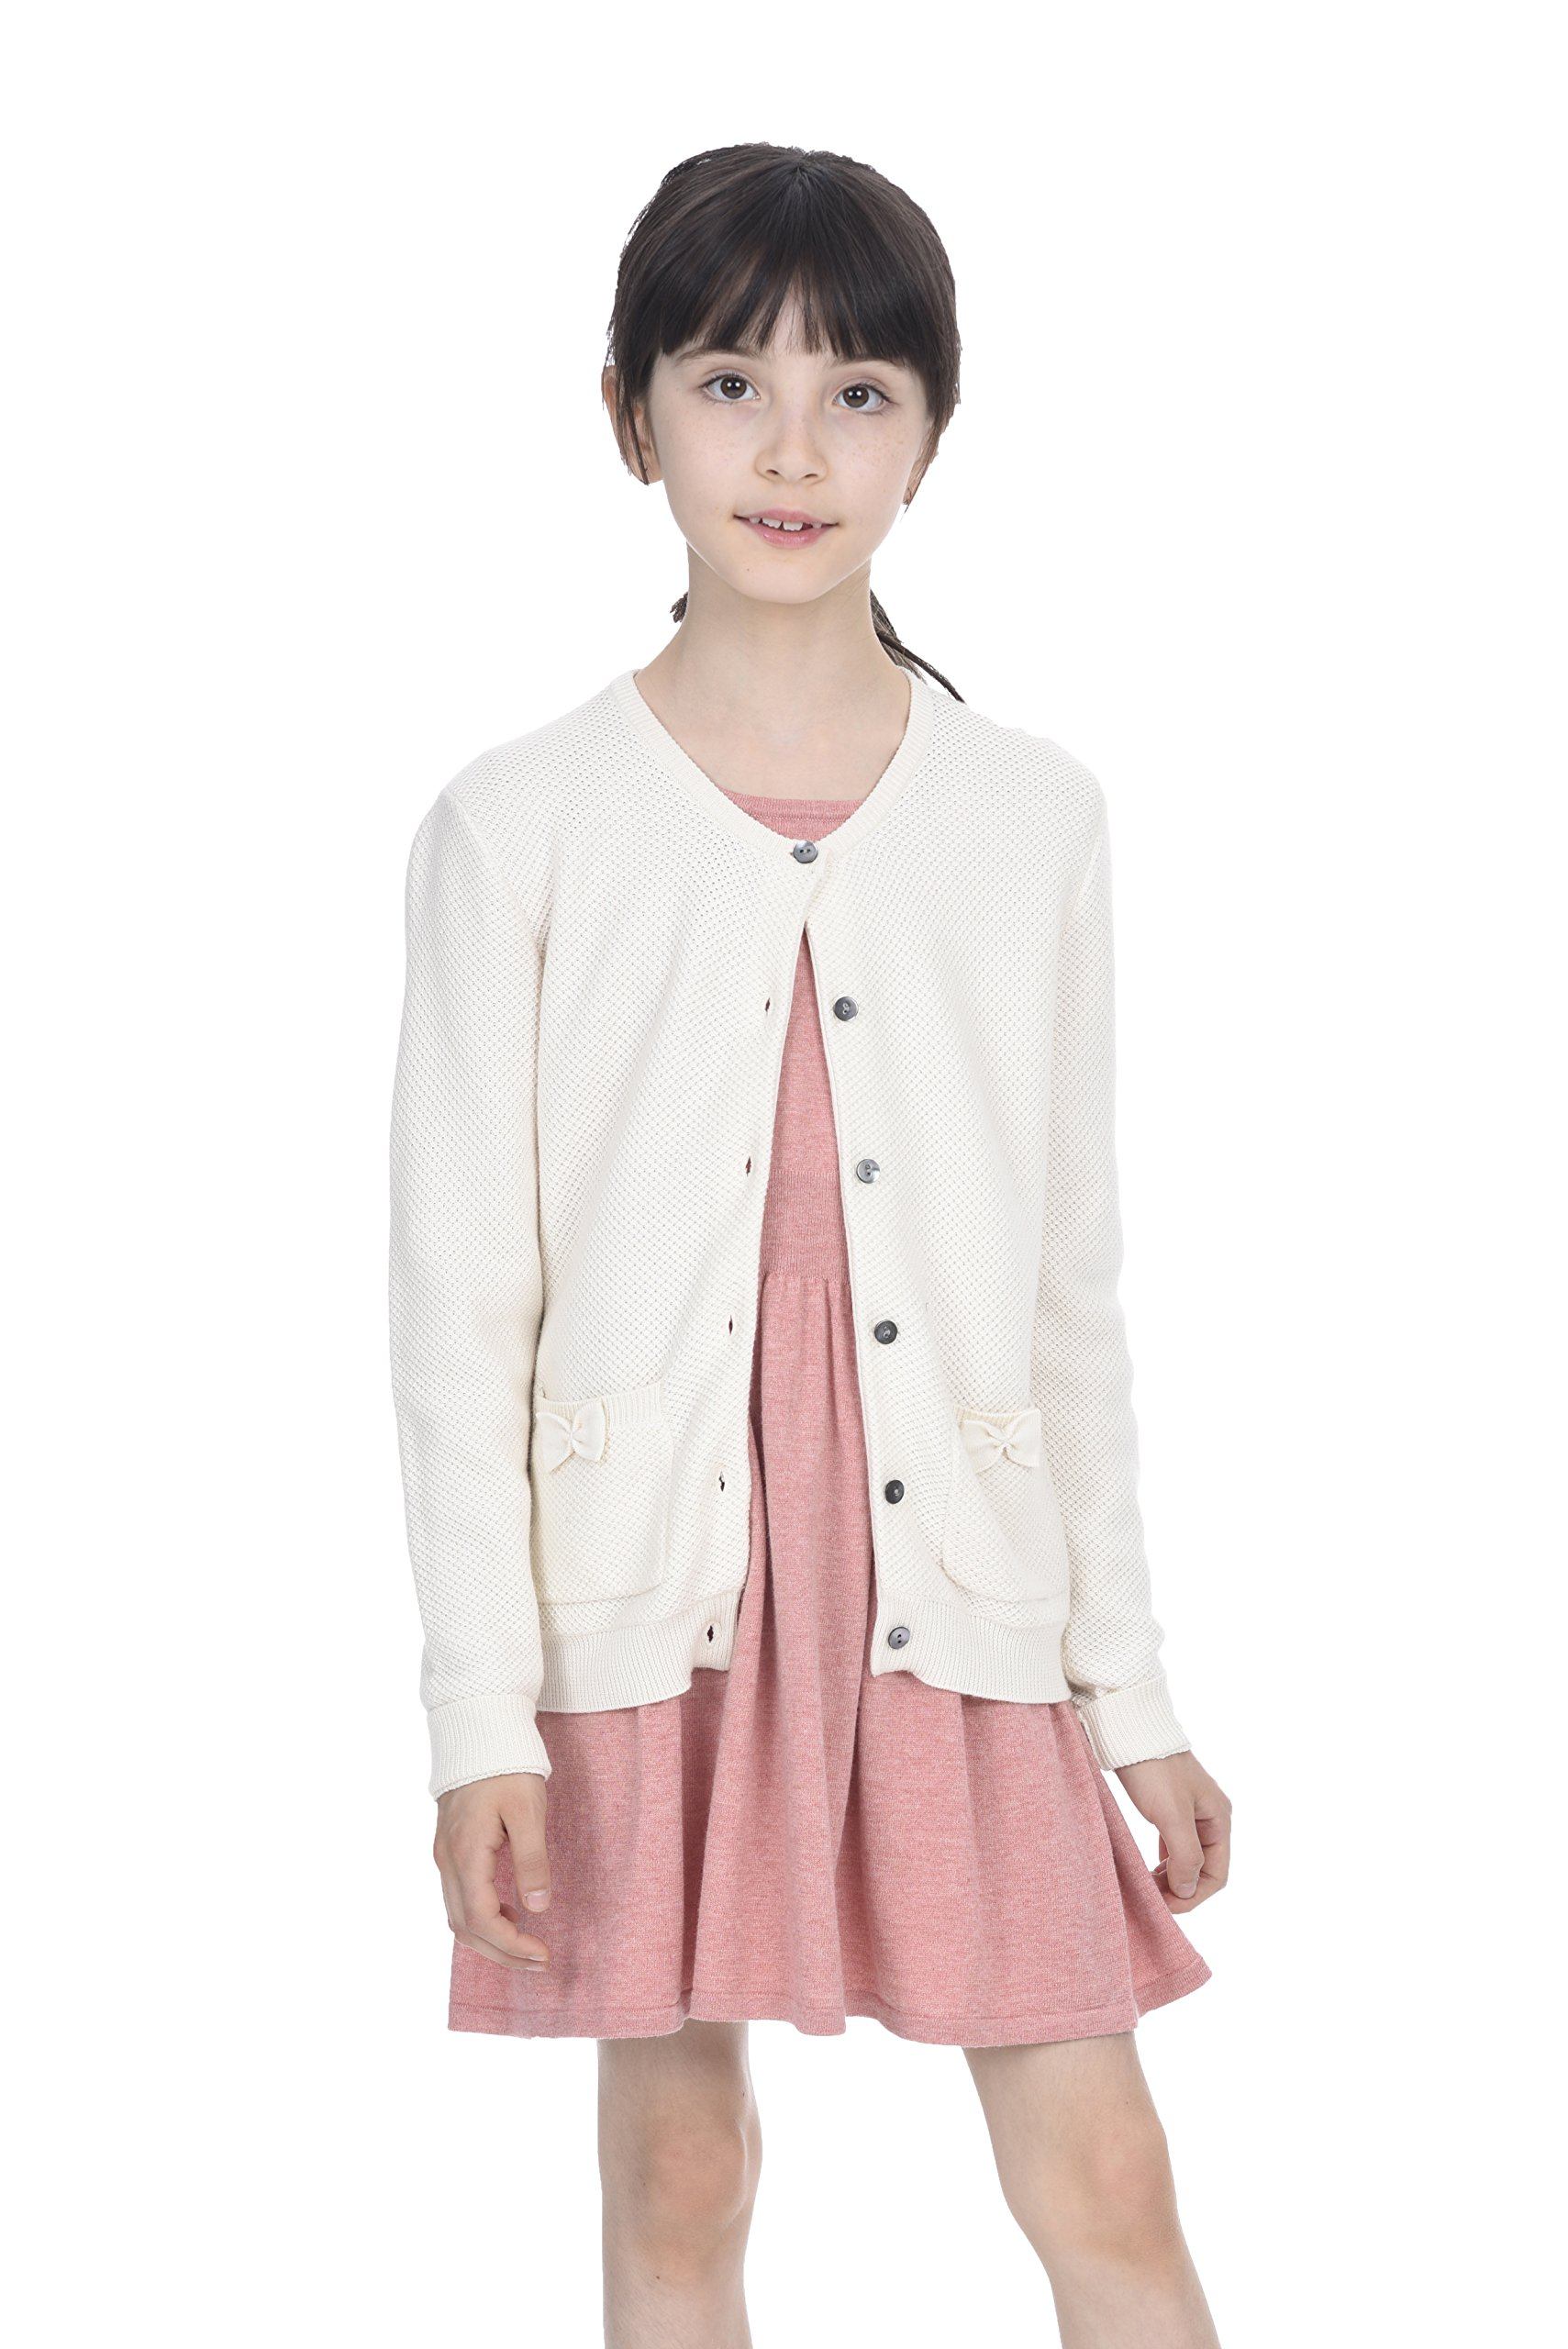 State Cashmere Girl's Cotton Cashmere Crewneck Knitted Button Long Sleeve Cardigan Sweater